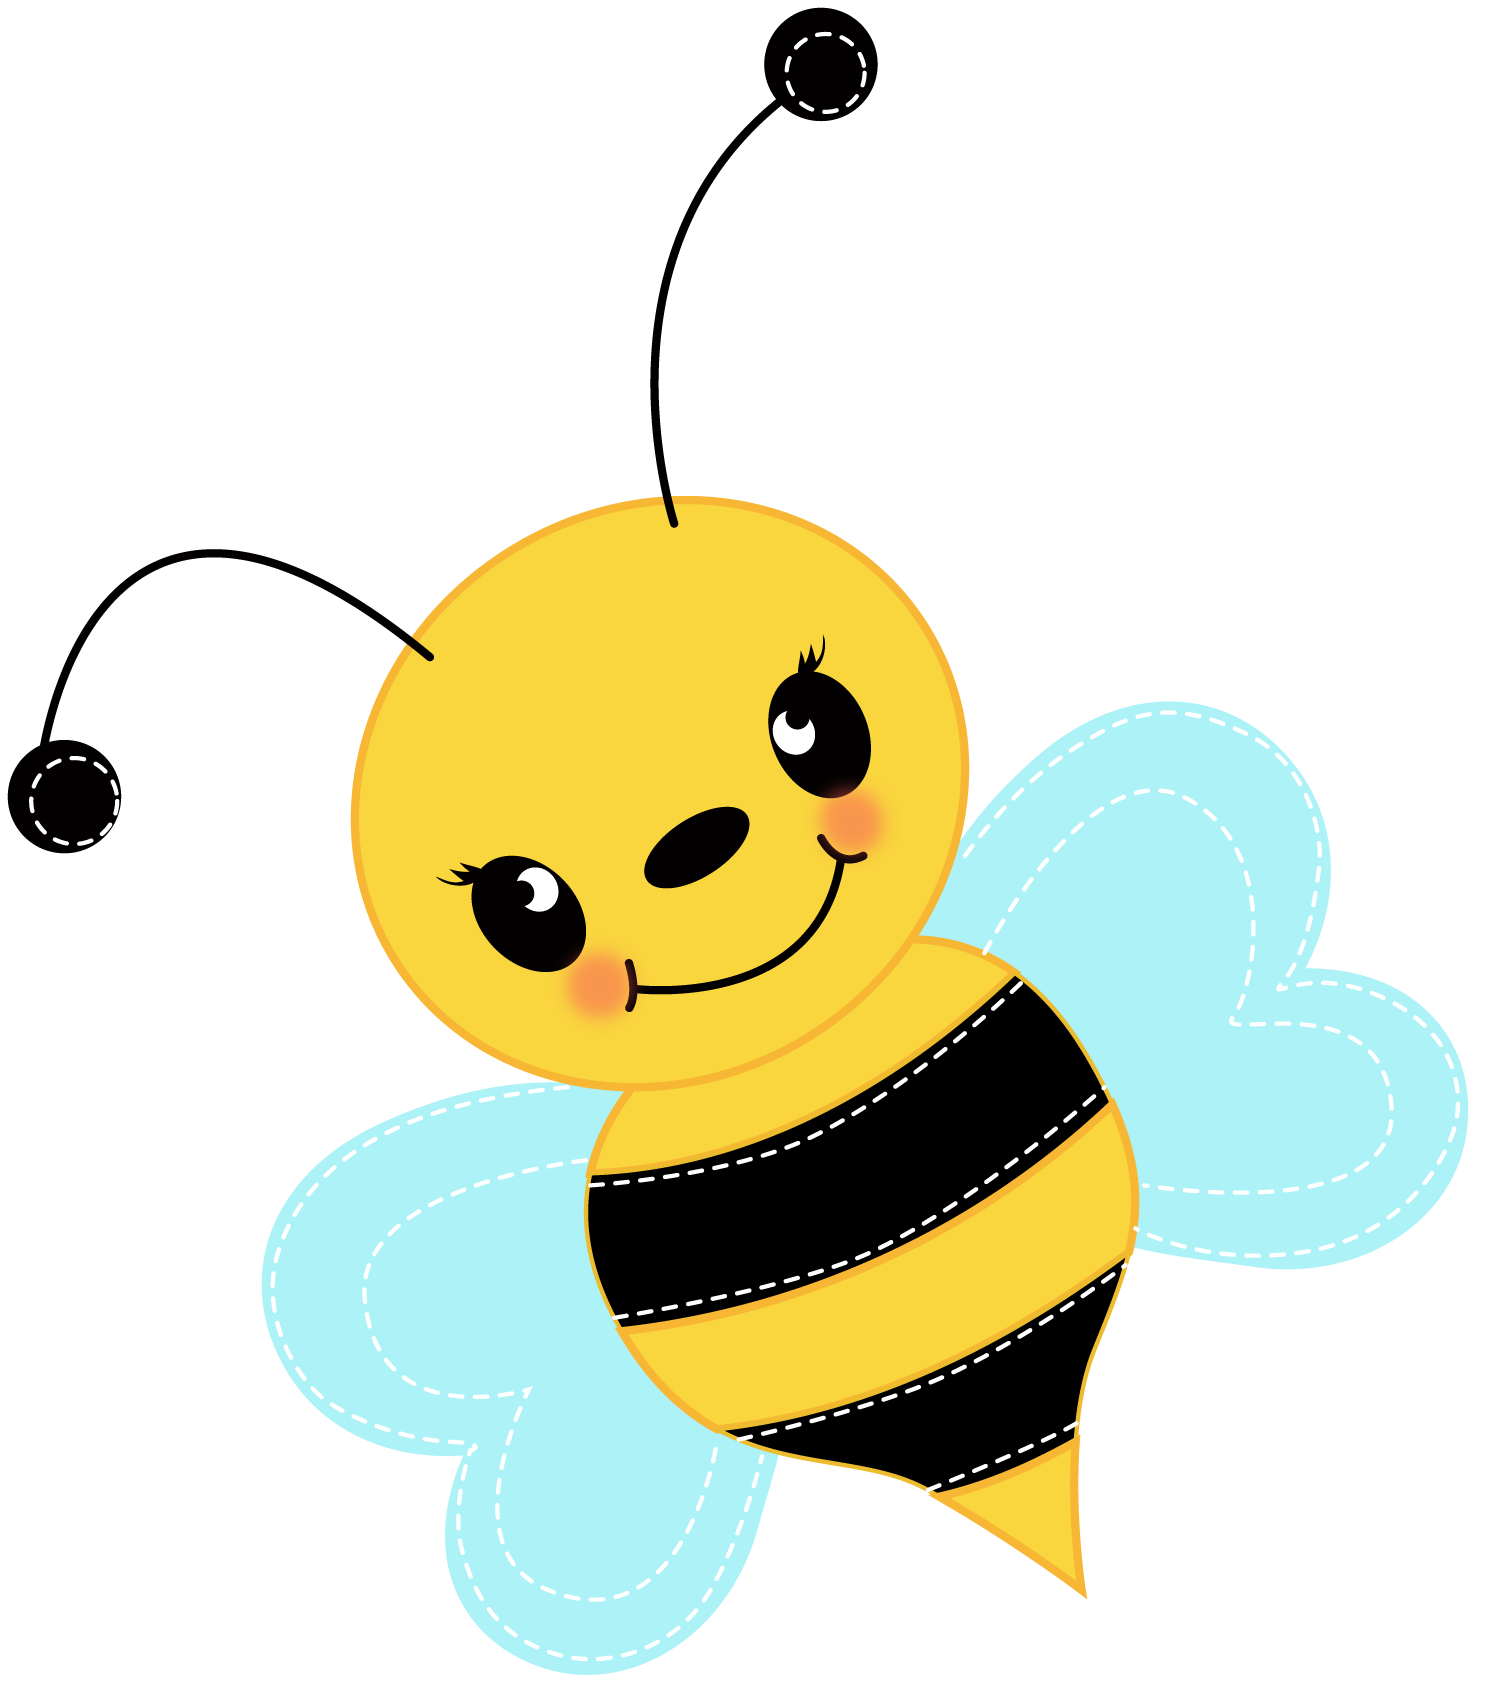 Bee Hive clipart animated baby For Info Clipart bee Images